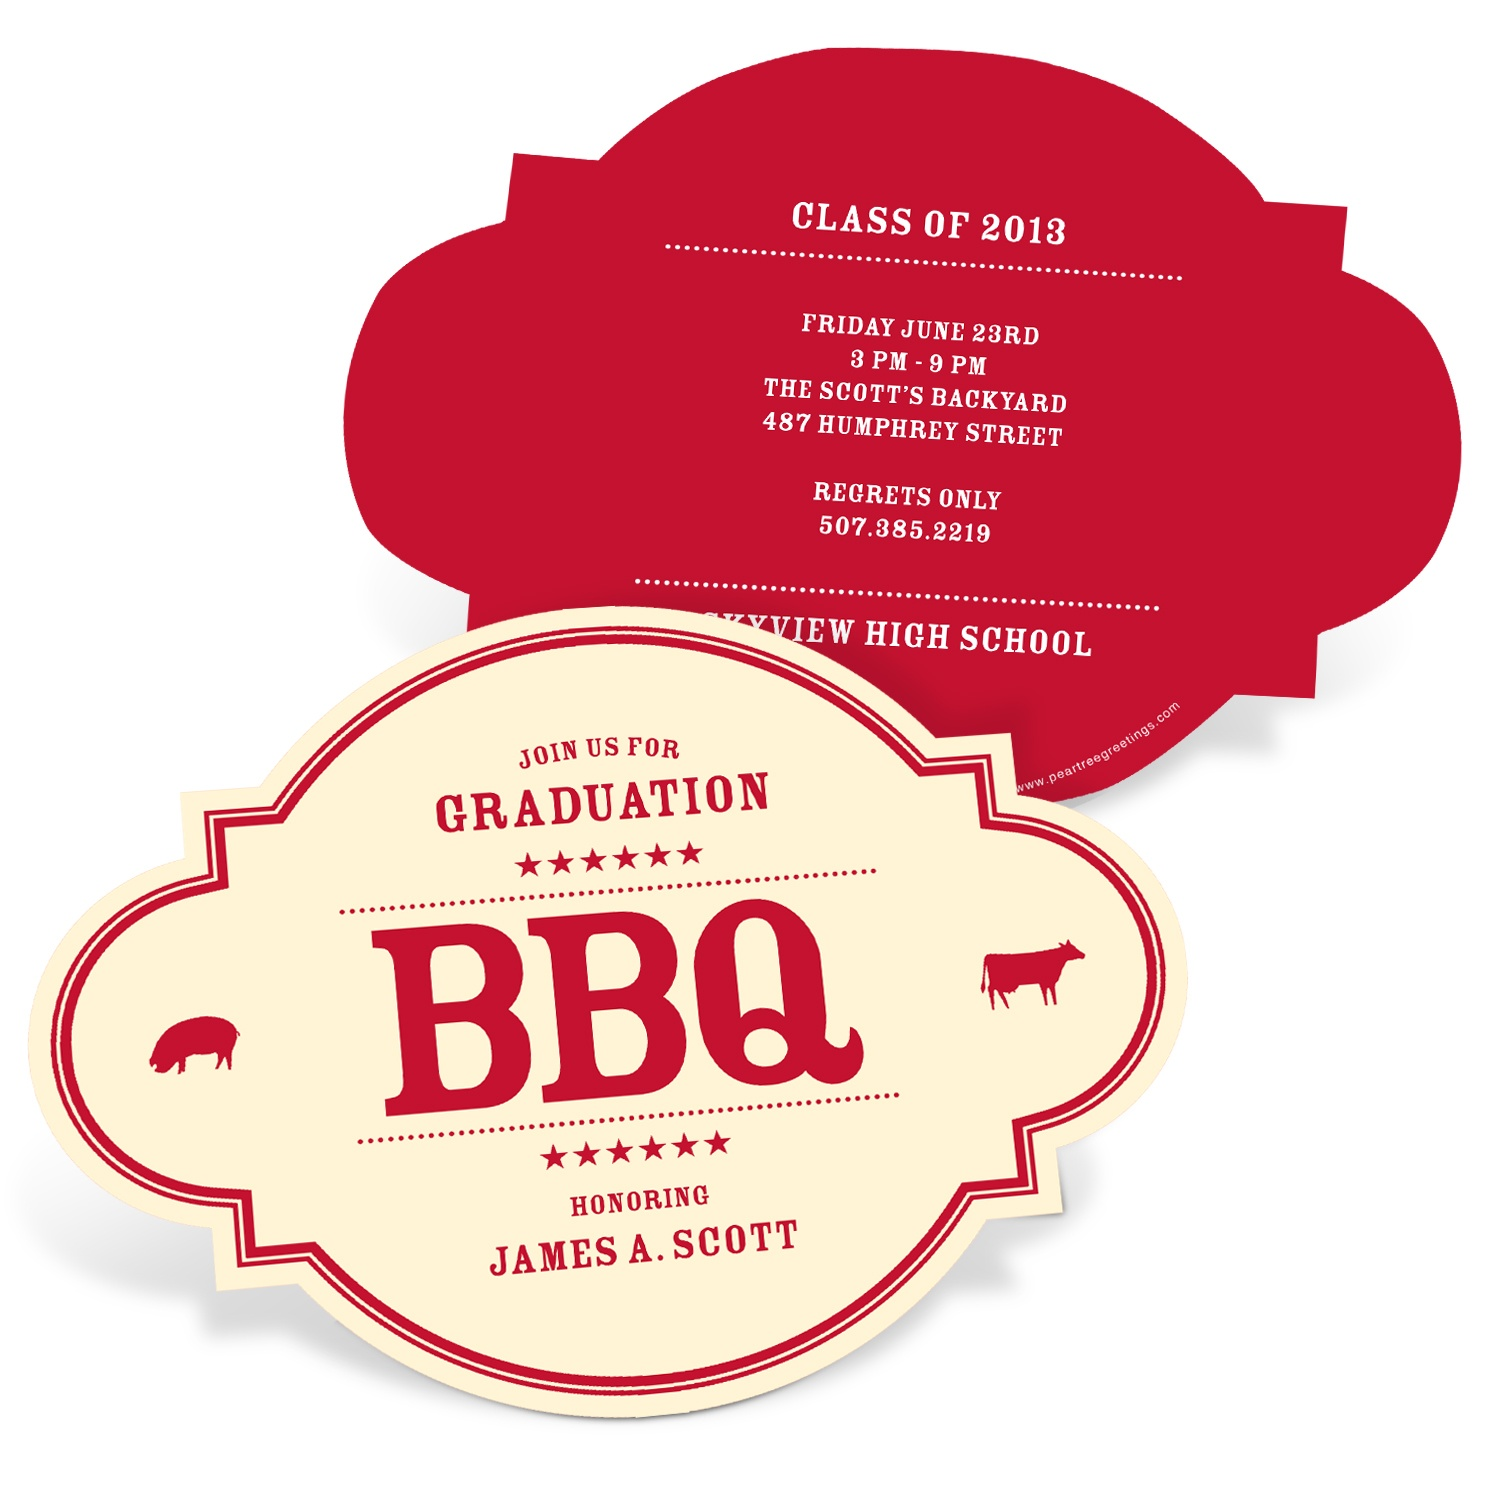 BBQ Graduation Party Ideas - the BBQ Bash | Pear Tree Blog